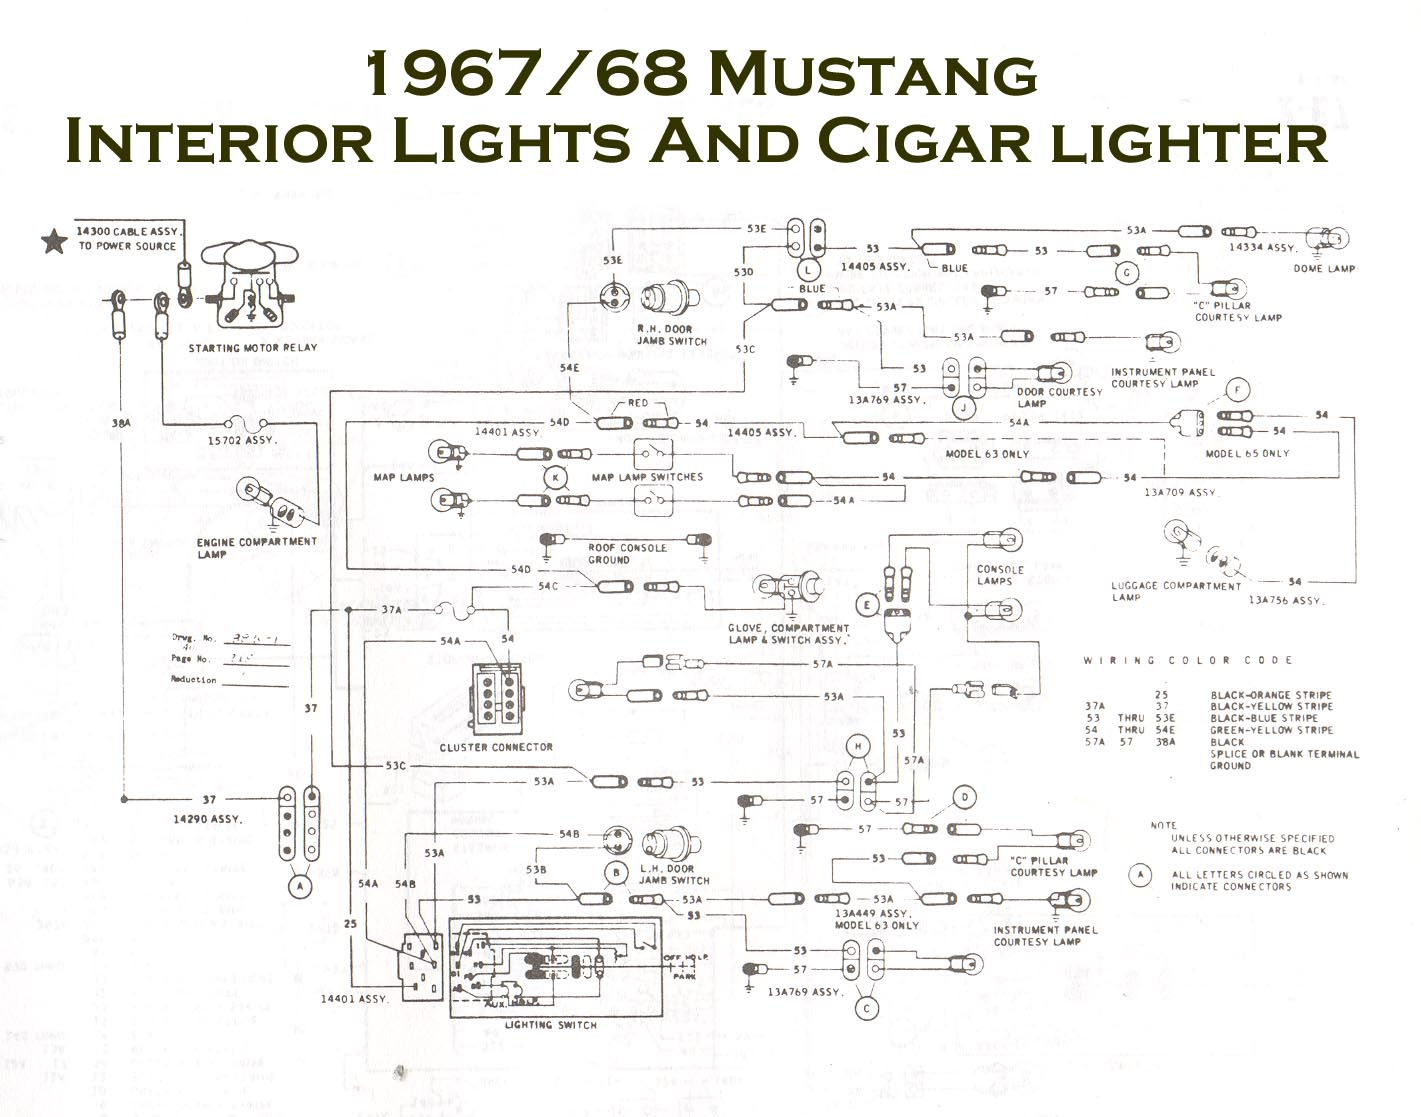 1967 68_console_wiring_diagram vintage mustang wiring diagrams 2004 volvo s40 radio wiring diagram at nearapp.co